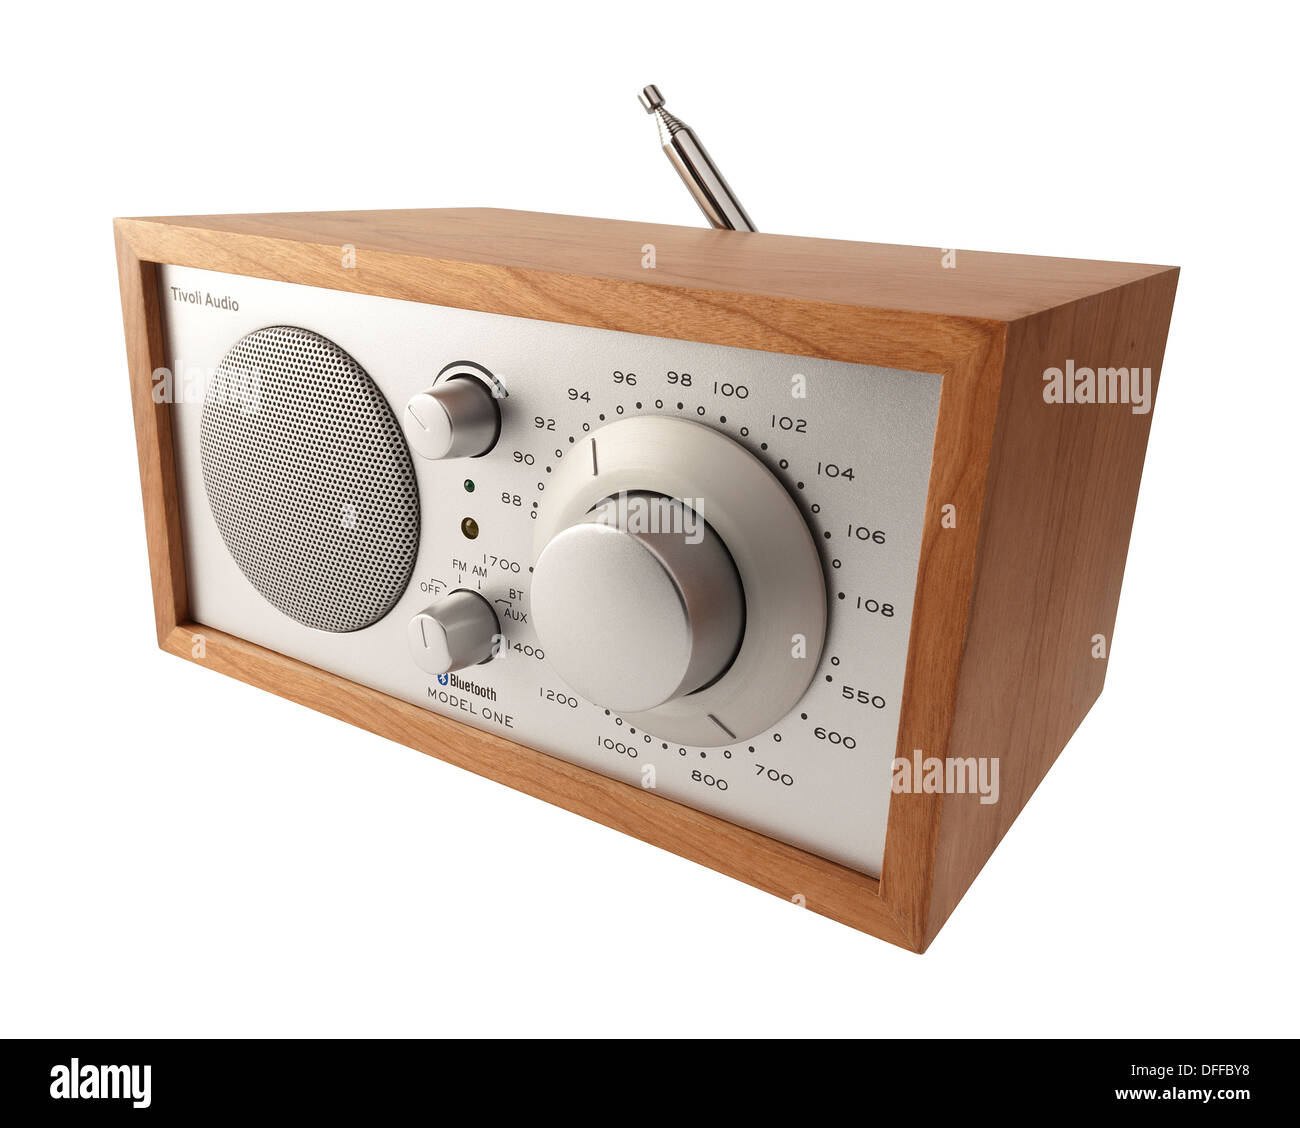 tivoli audio dab radio model one stock photo royalty free. Black Bedroom Furniture Sets. Home Design Ideas